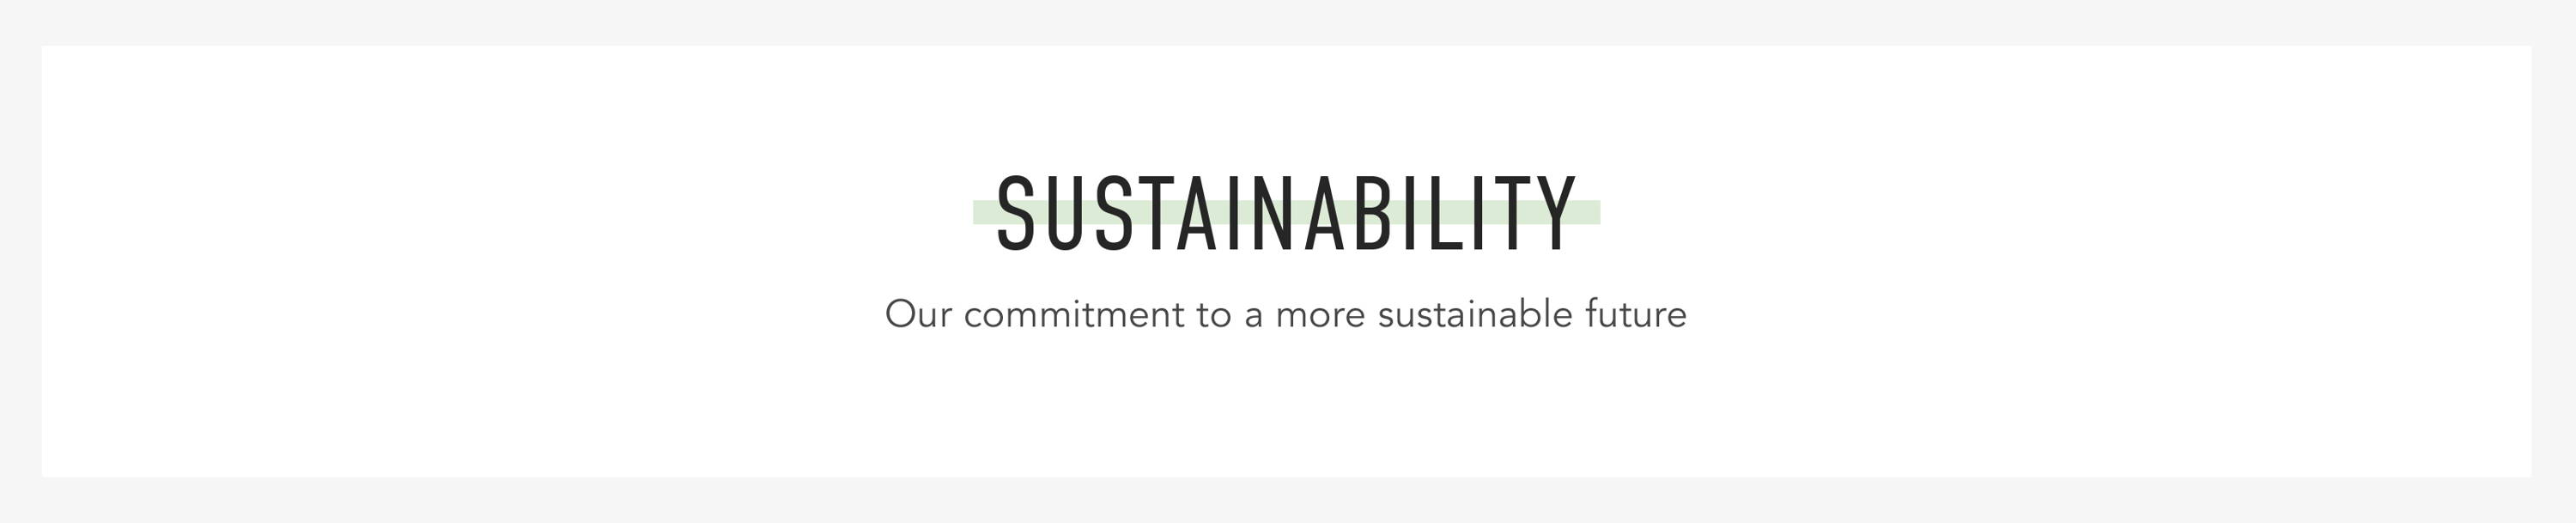 SUSTAINABILITY - Our commitment to a more sustainable future.